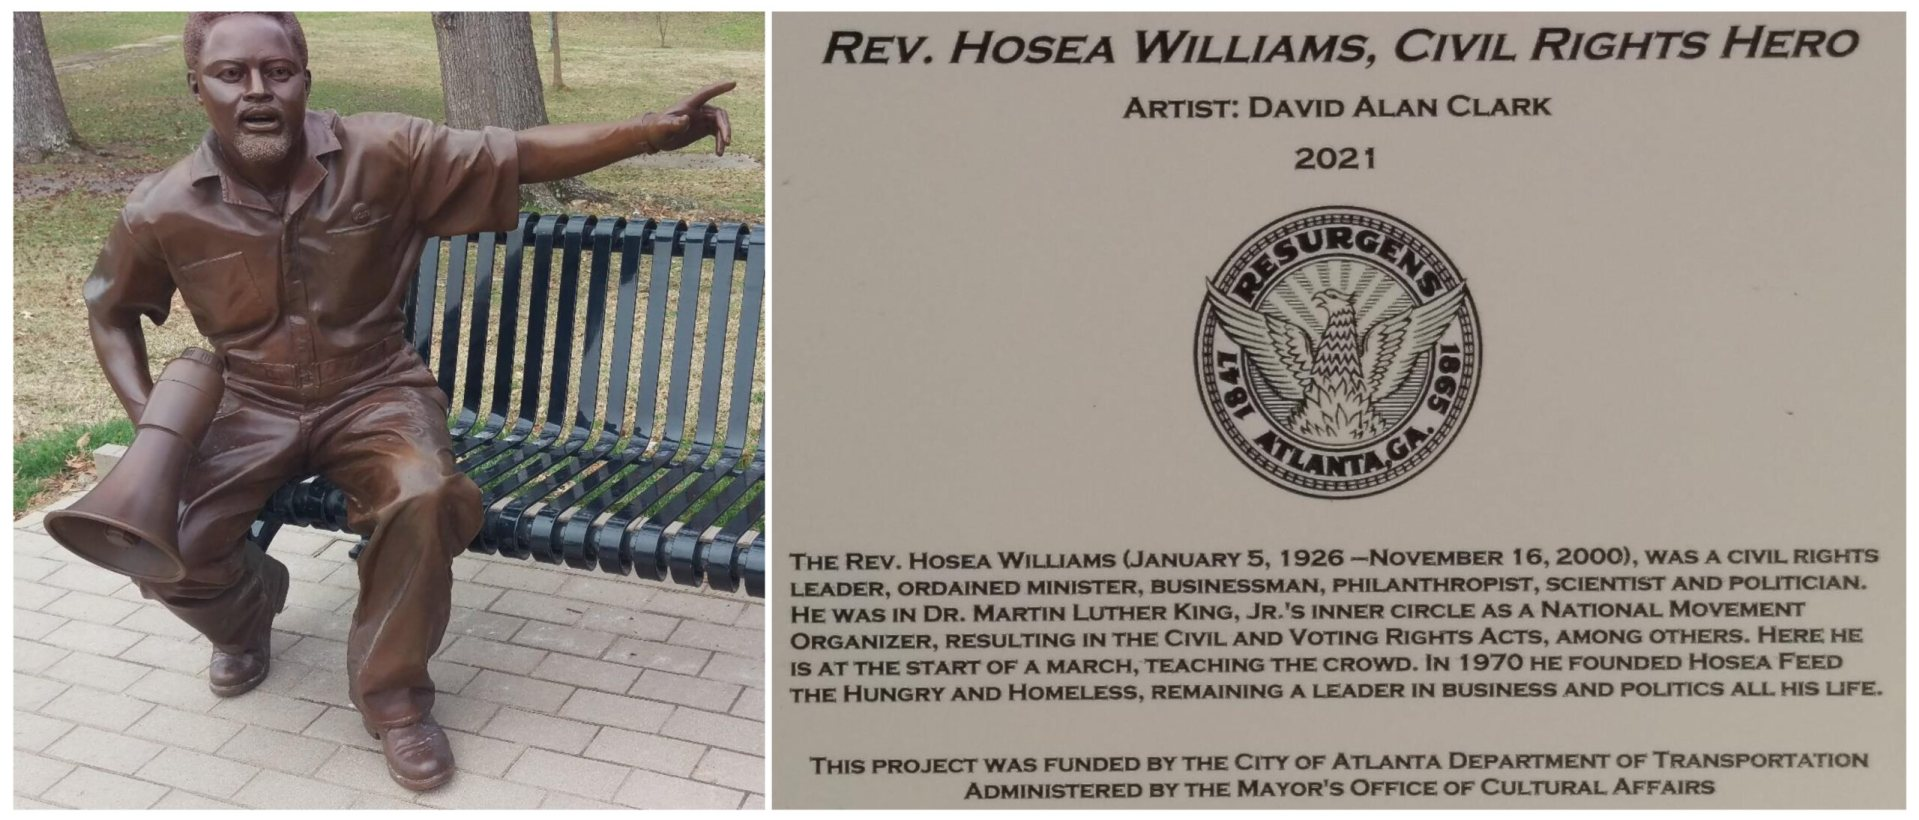 Bronze Art of Reverend Hosea Williams, Photos by John B. Smith, Jr.